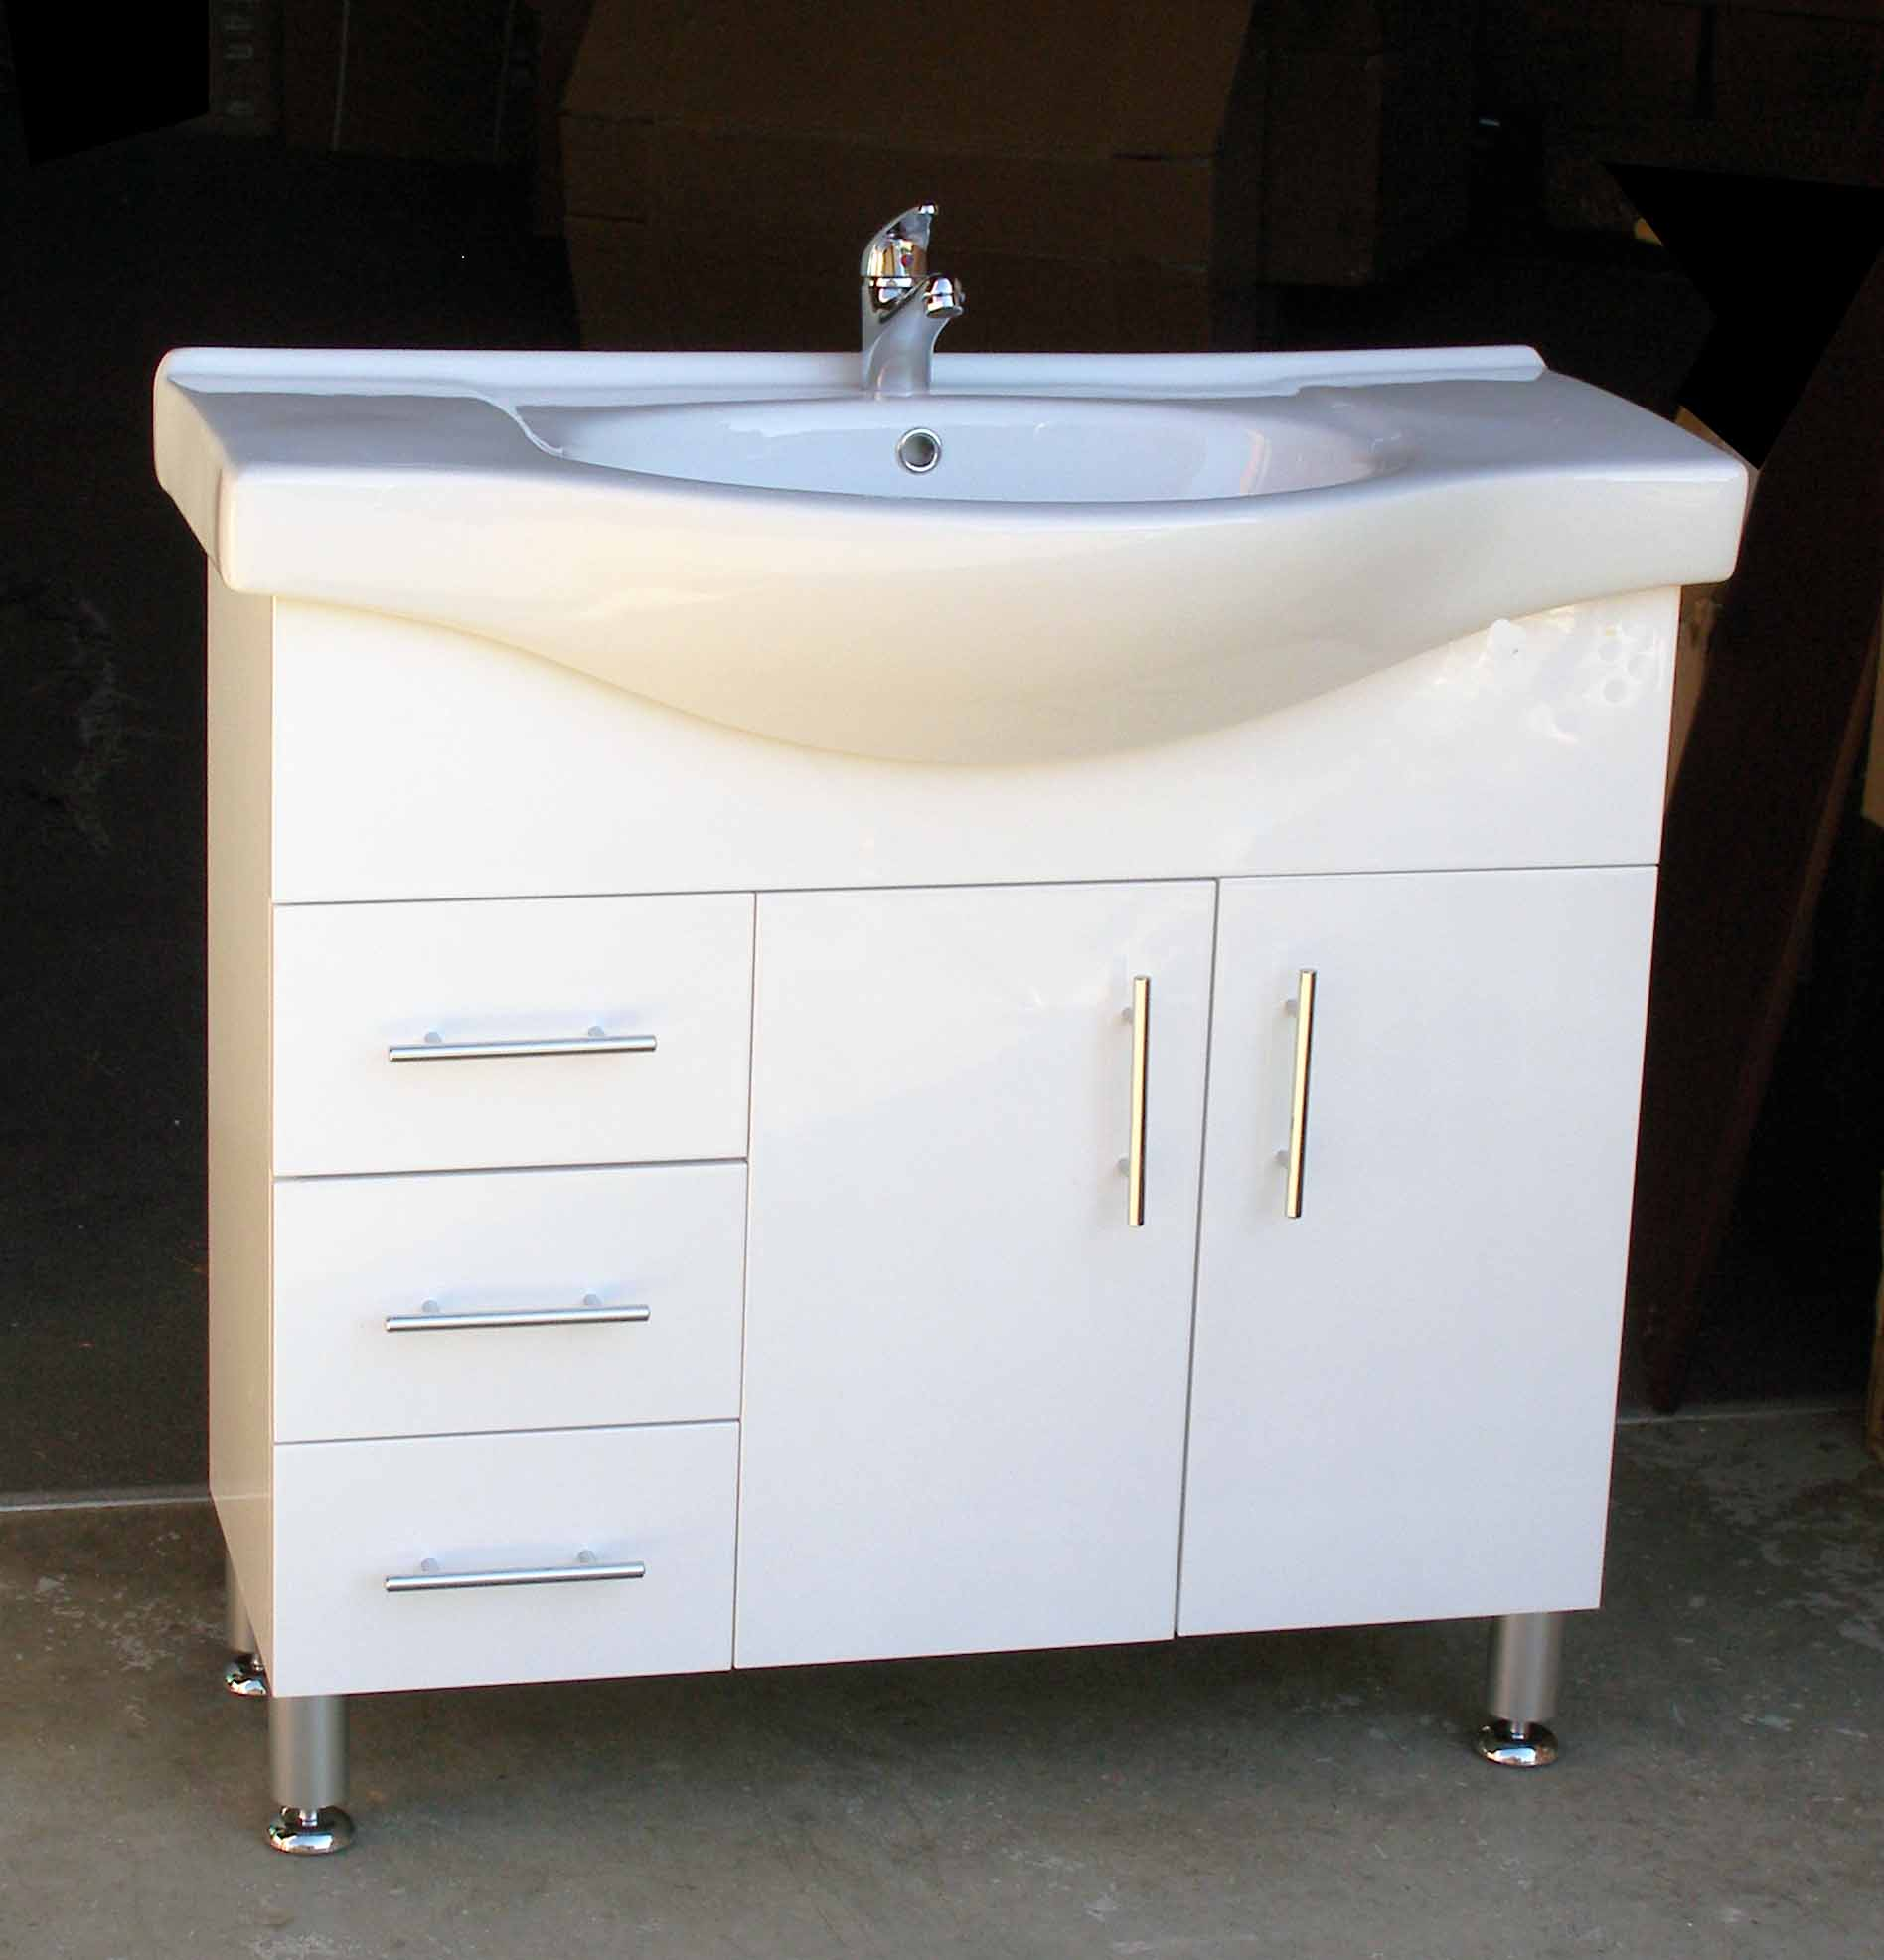 Selene L900l 900mm Semi Recessed Vanity Unit With Left Hand Drawers On Metal Legs Sydney